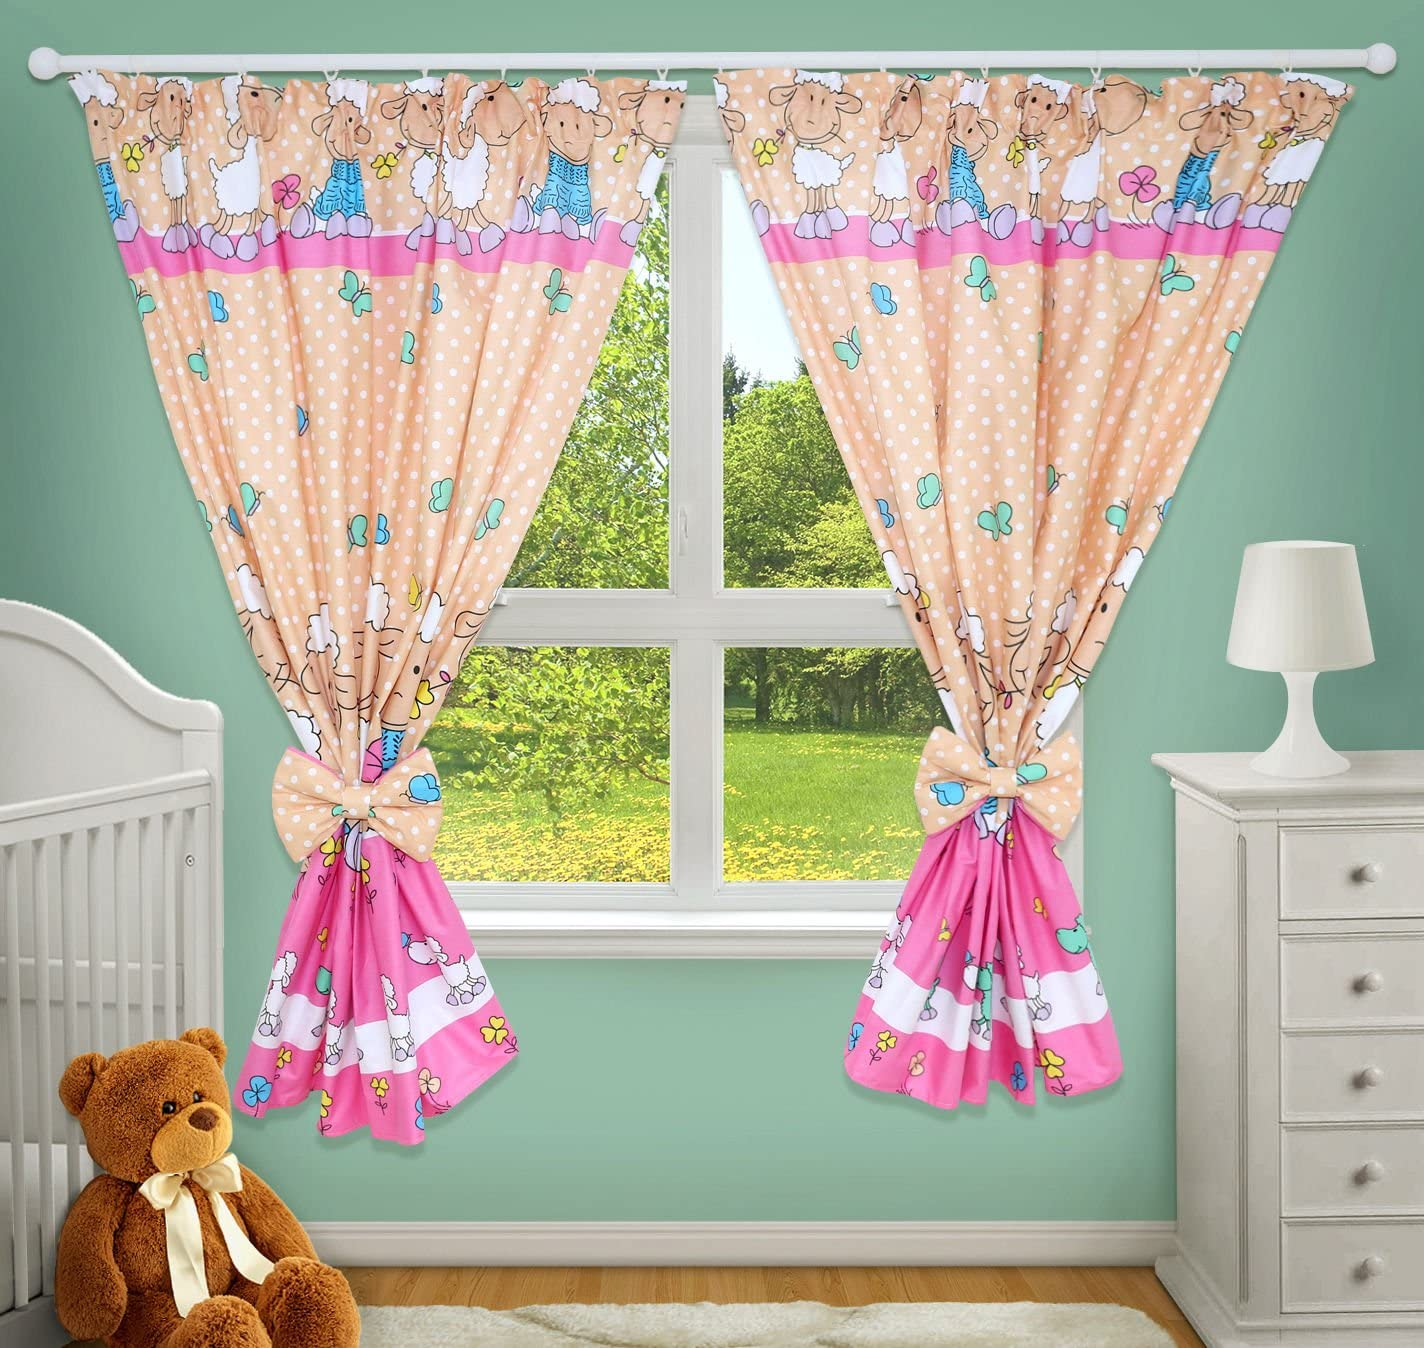 Luxury Decorative Curtains for Baby Room Matching with Our Nursery Bedding Sets Hearts